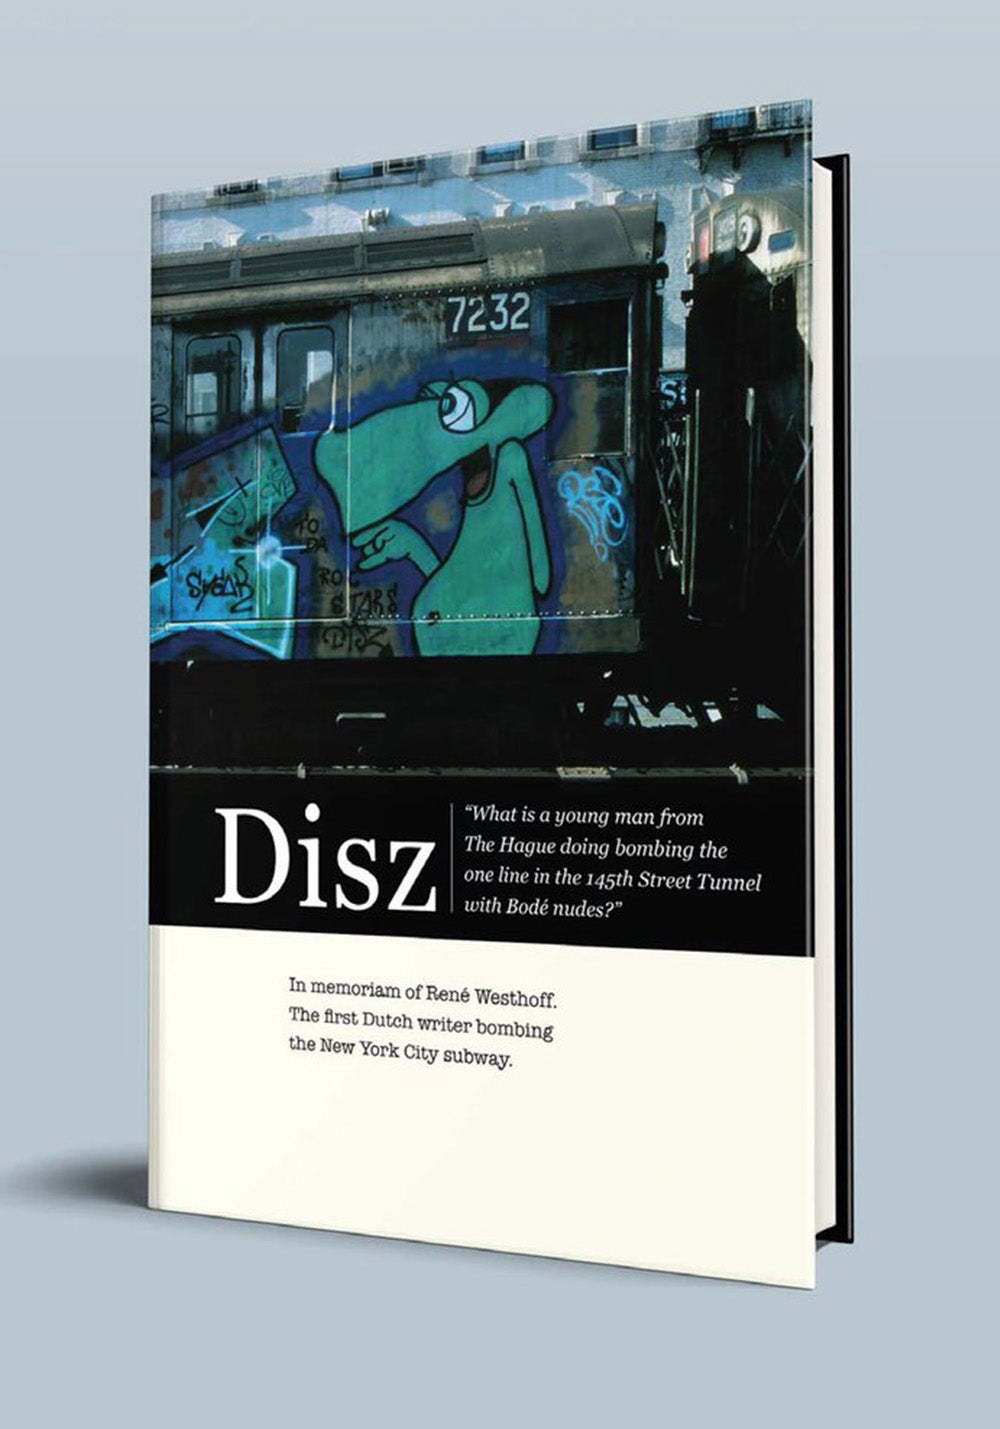 Image of Disz. The first Dutch writer bombing the New York City subway.